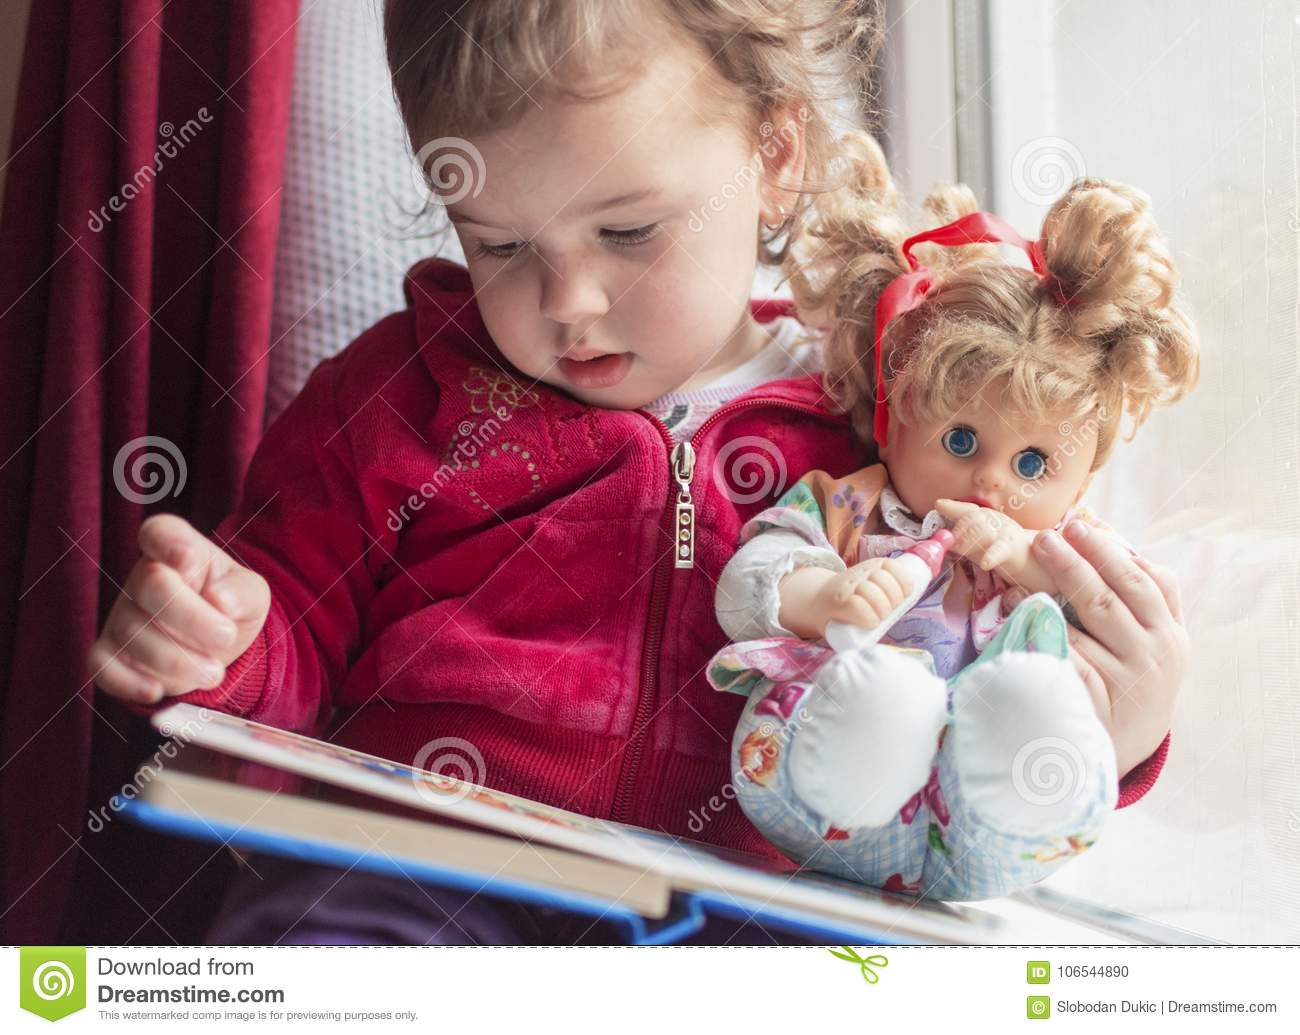 A rainy day is best for reading with your favorite doll